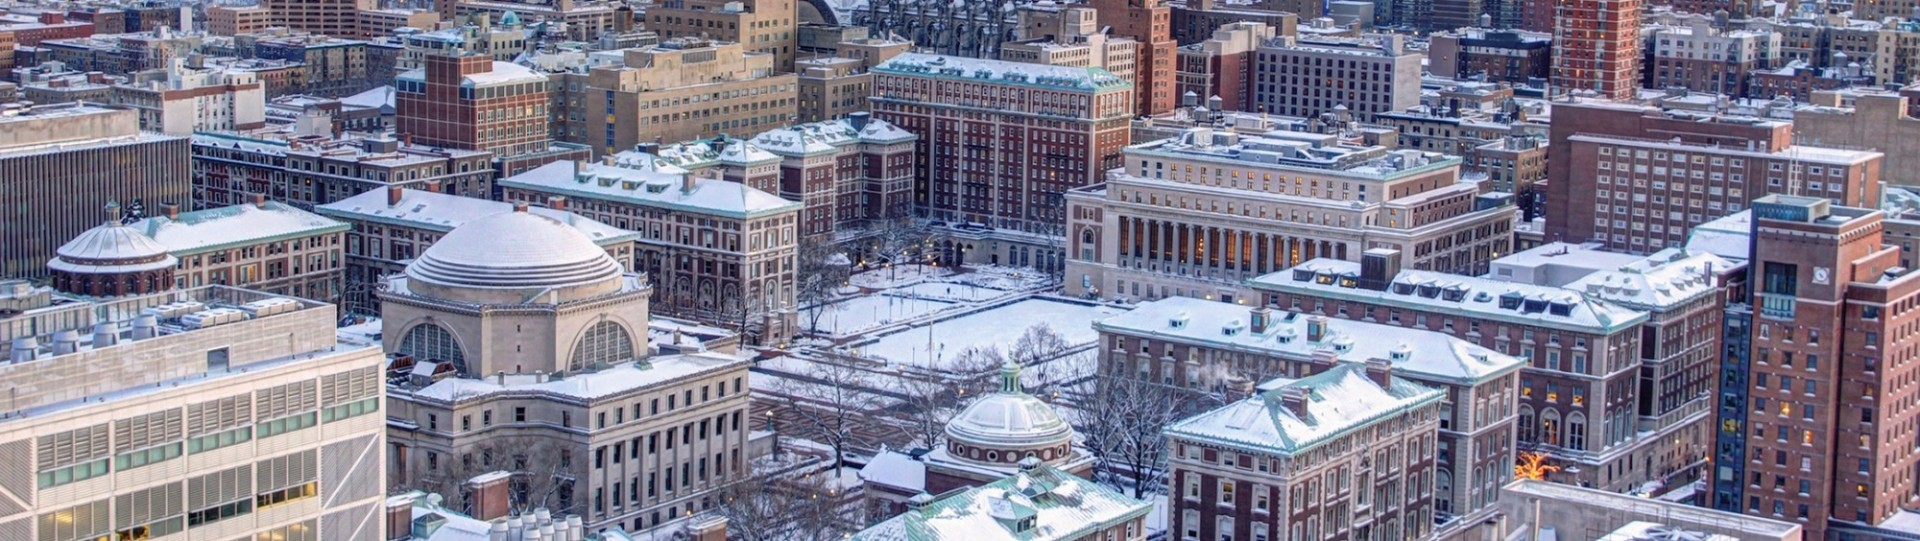 aerial shot of the Columbia University campus, covered in snow